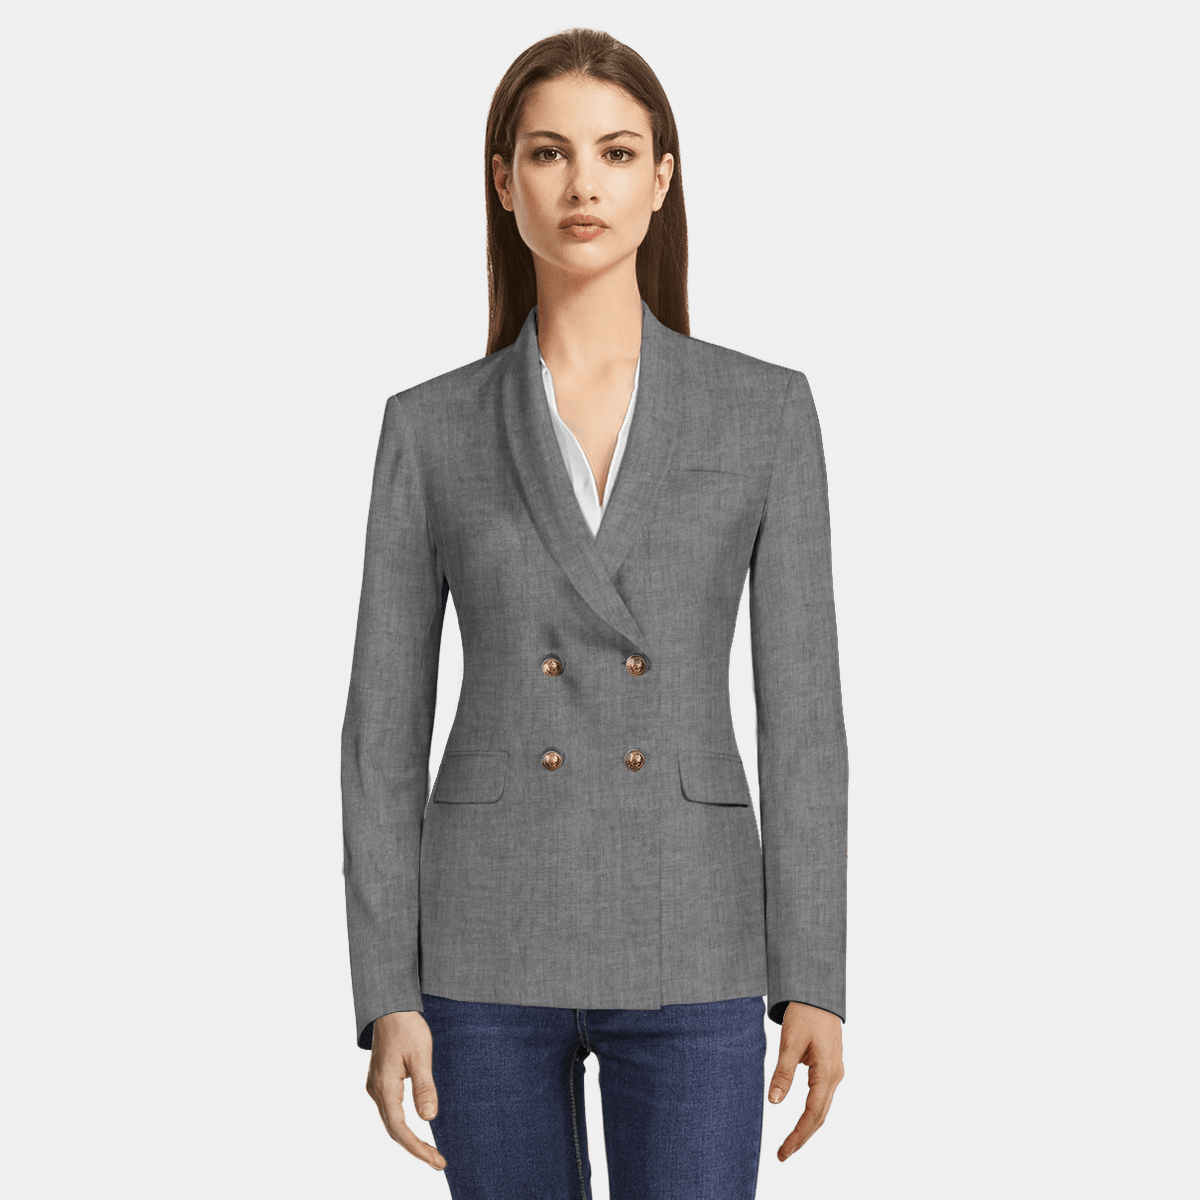 f5e32739 Grey linen double breasted Blazer with brass buttons